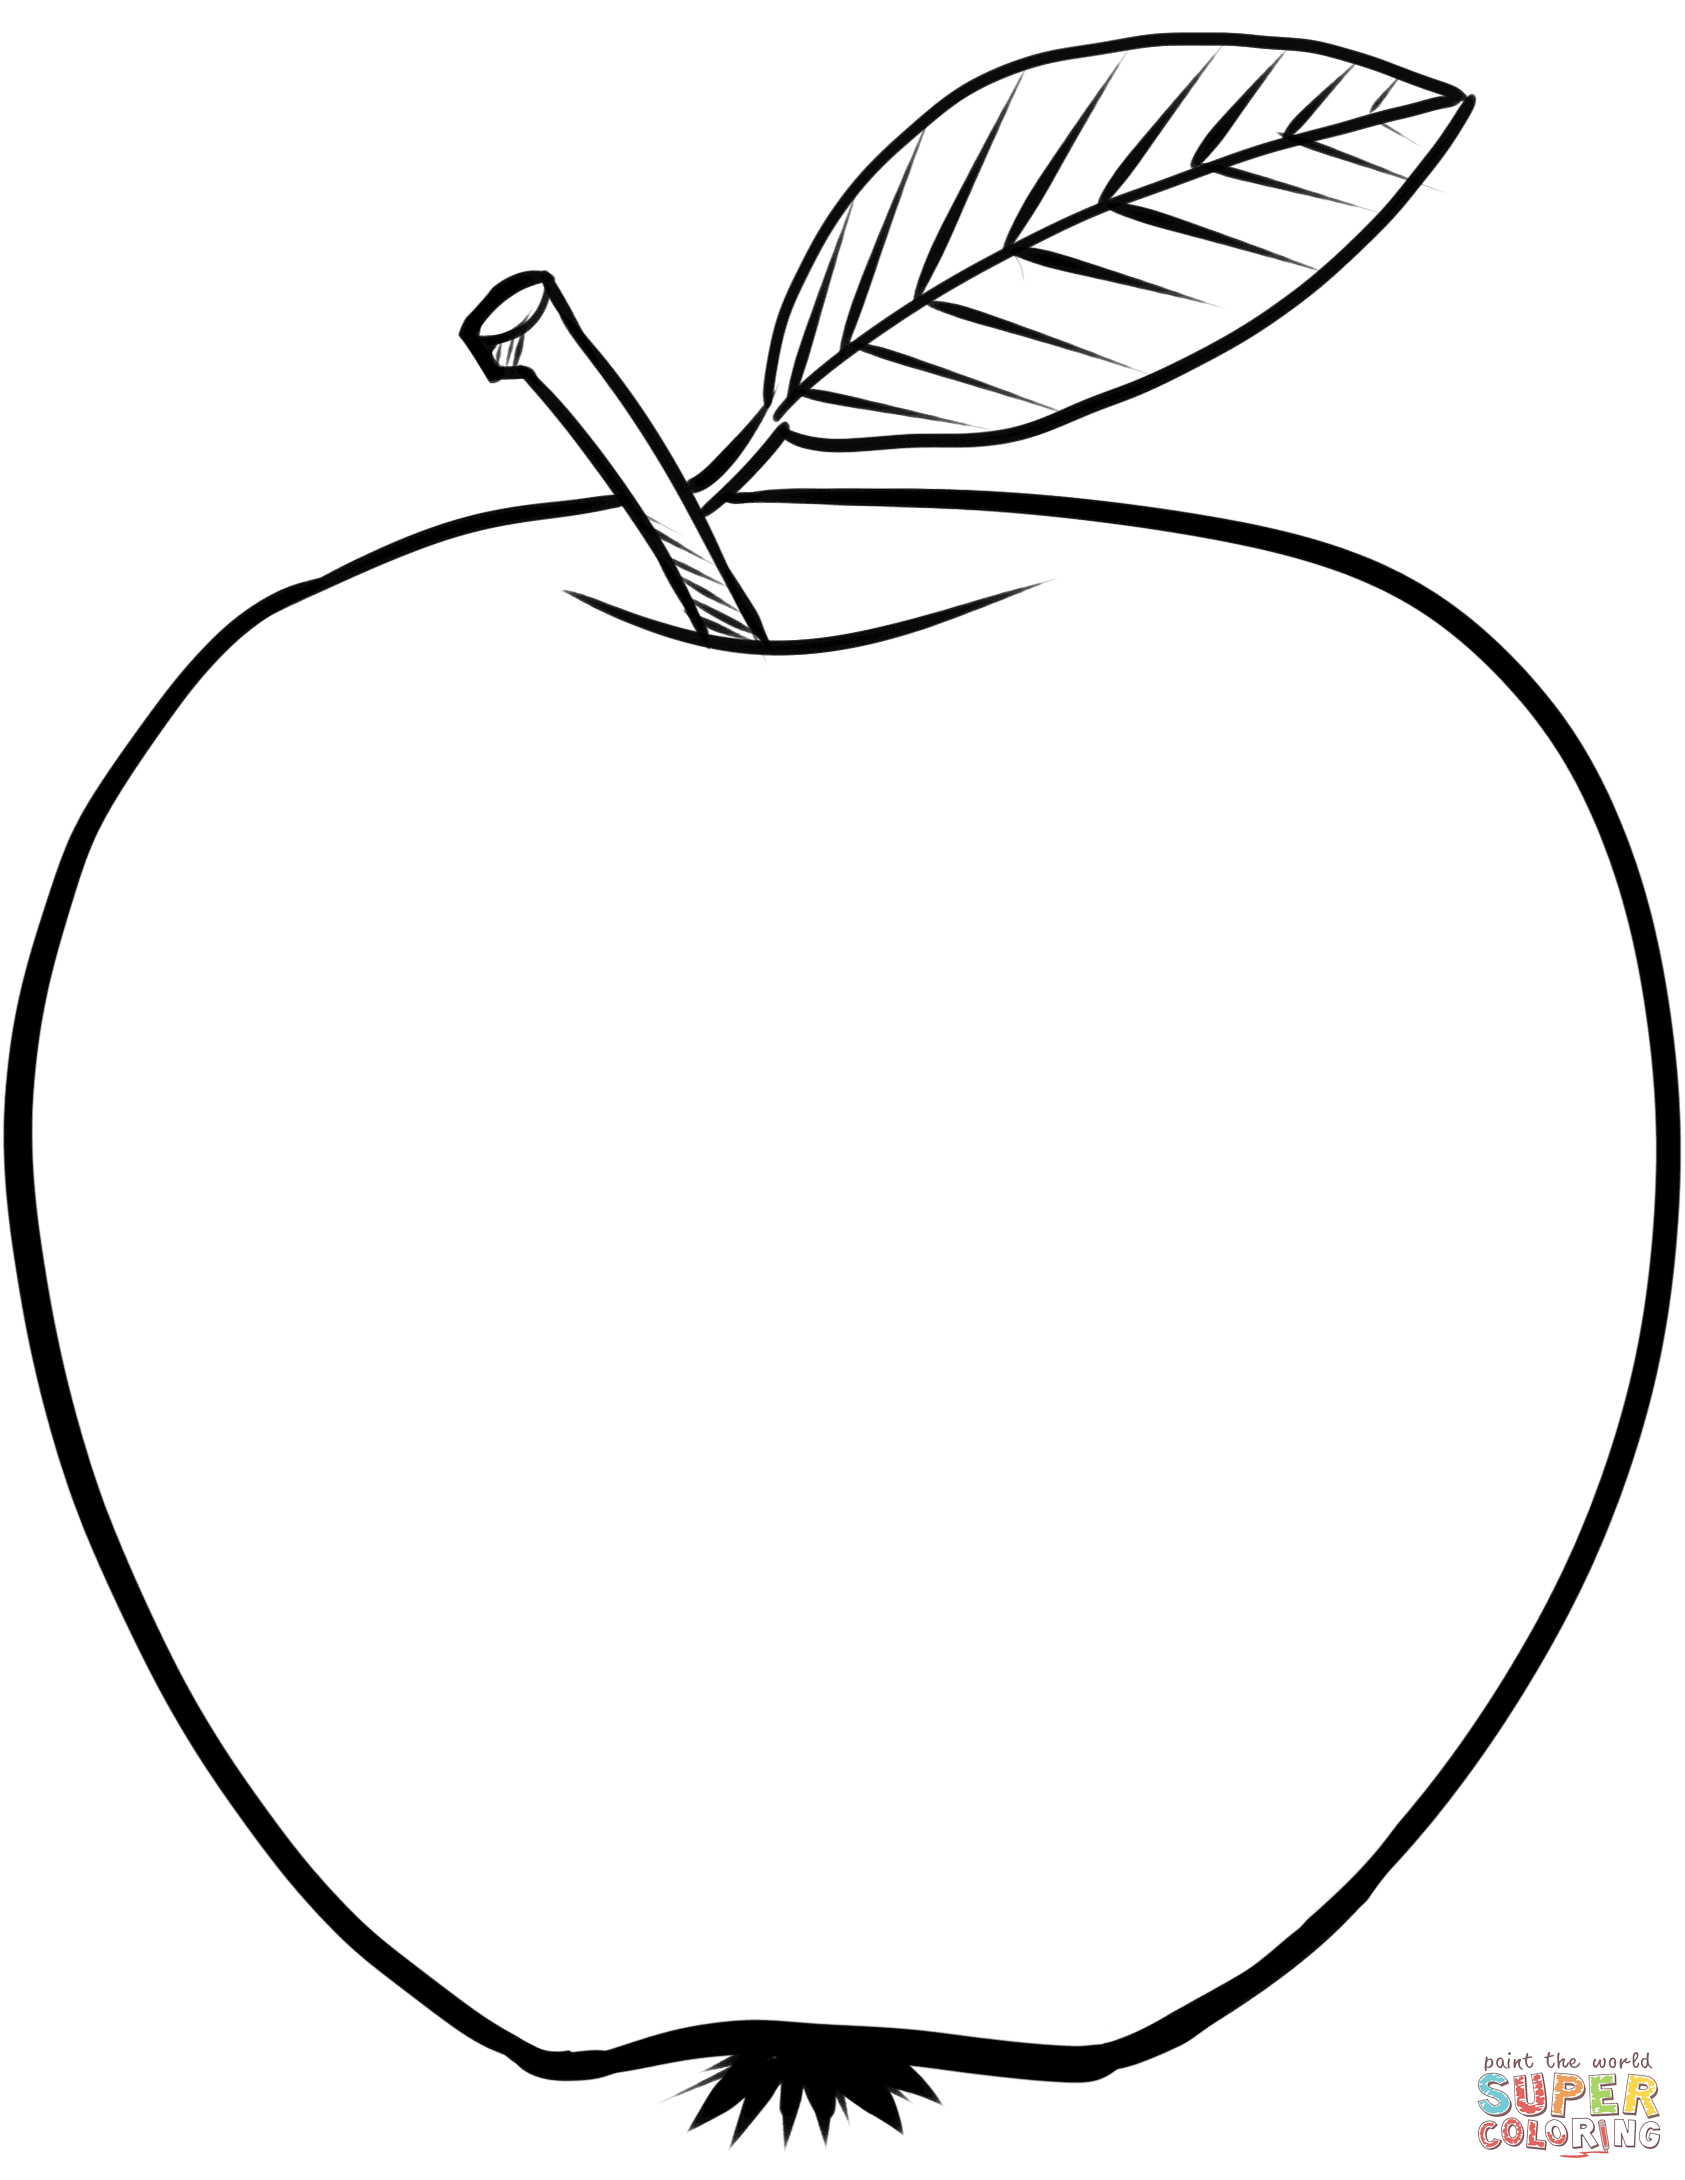 Coloring apple clipart best for Apple coloring pages